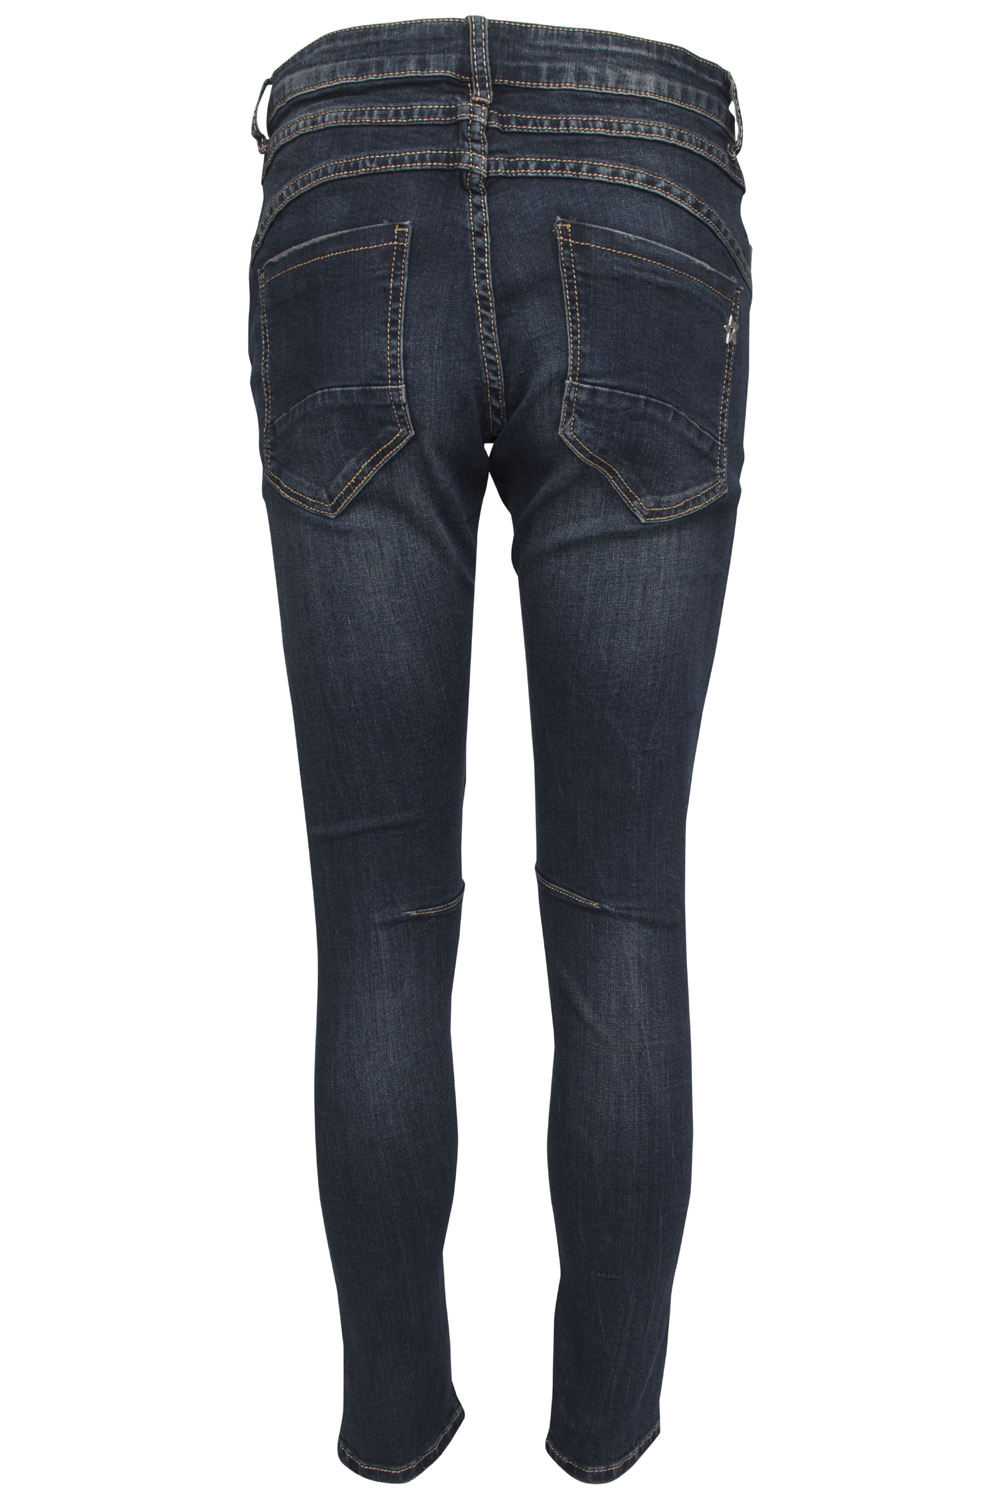 chica-london-chicalondon-jeans-zip